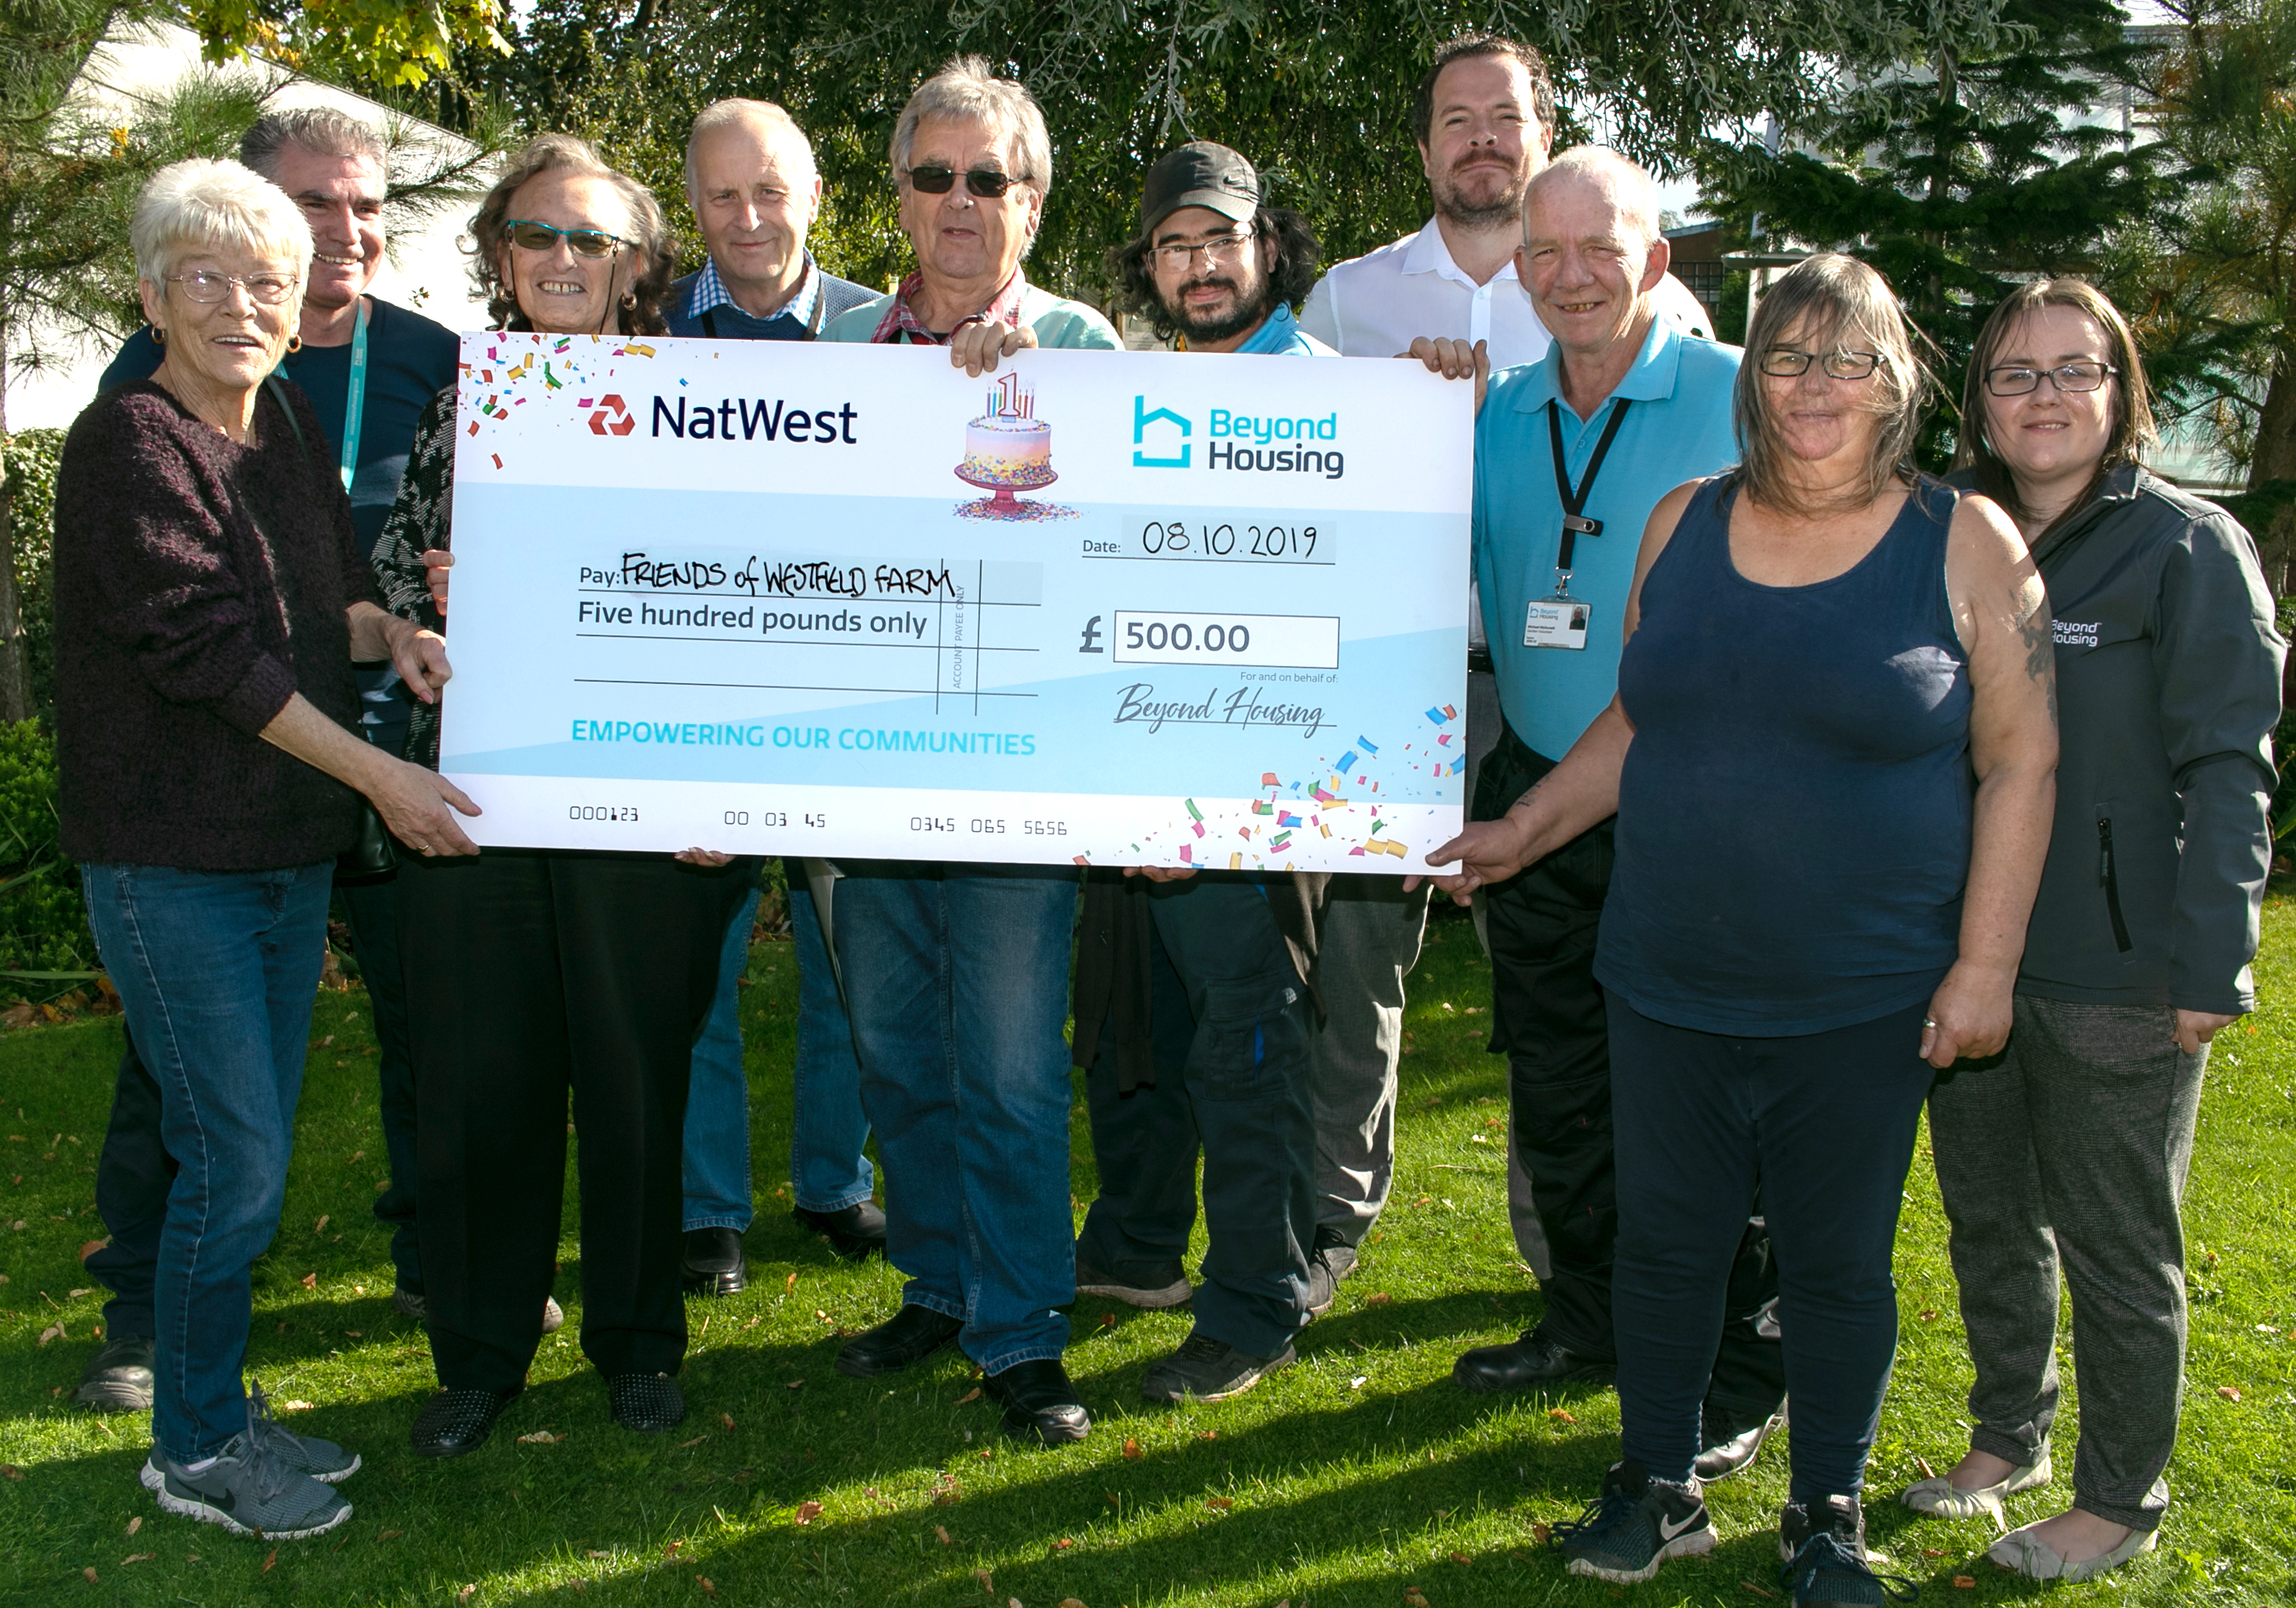 Charity Cheques Friends of Westfield Farm A ka